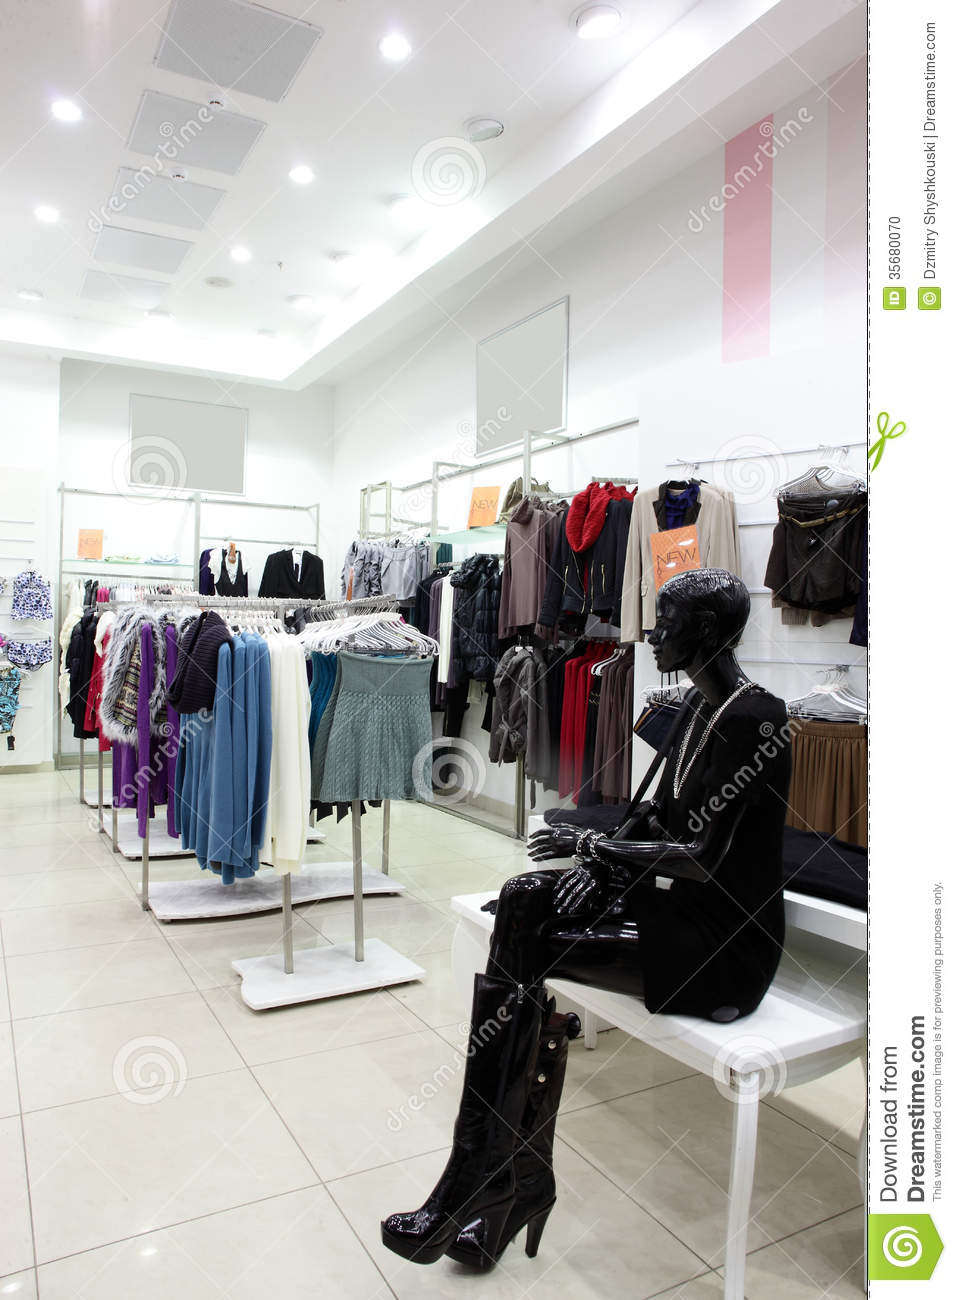 European clothing stores online